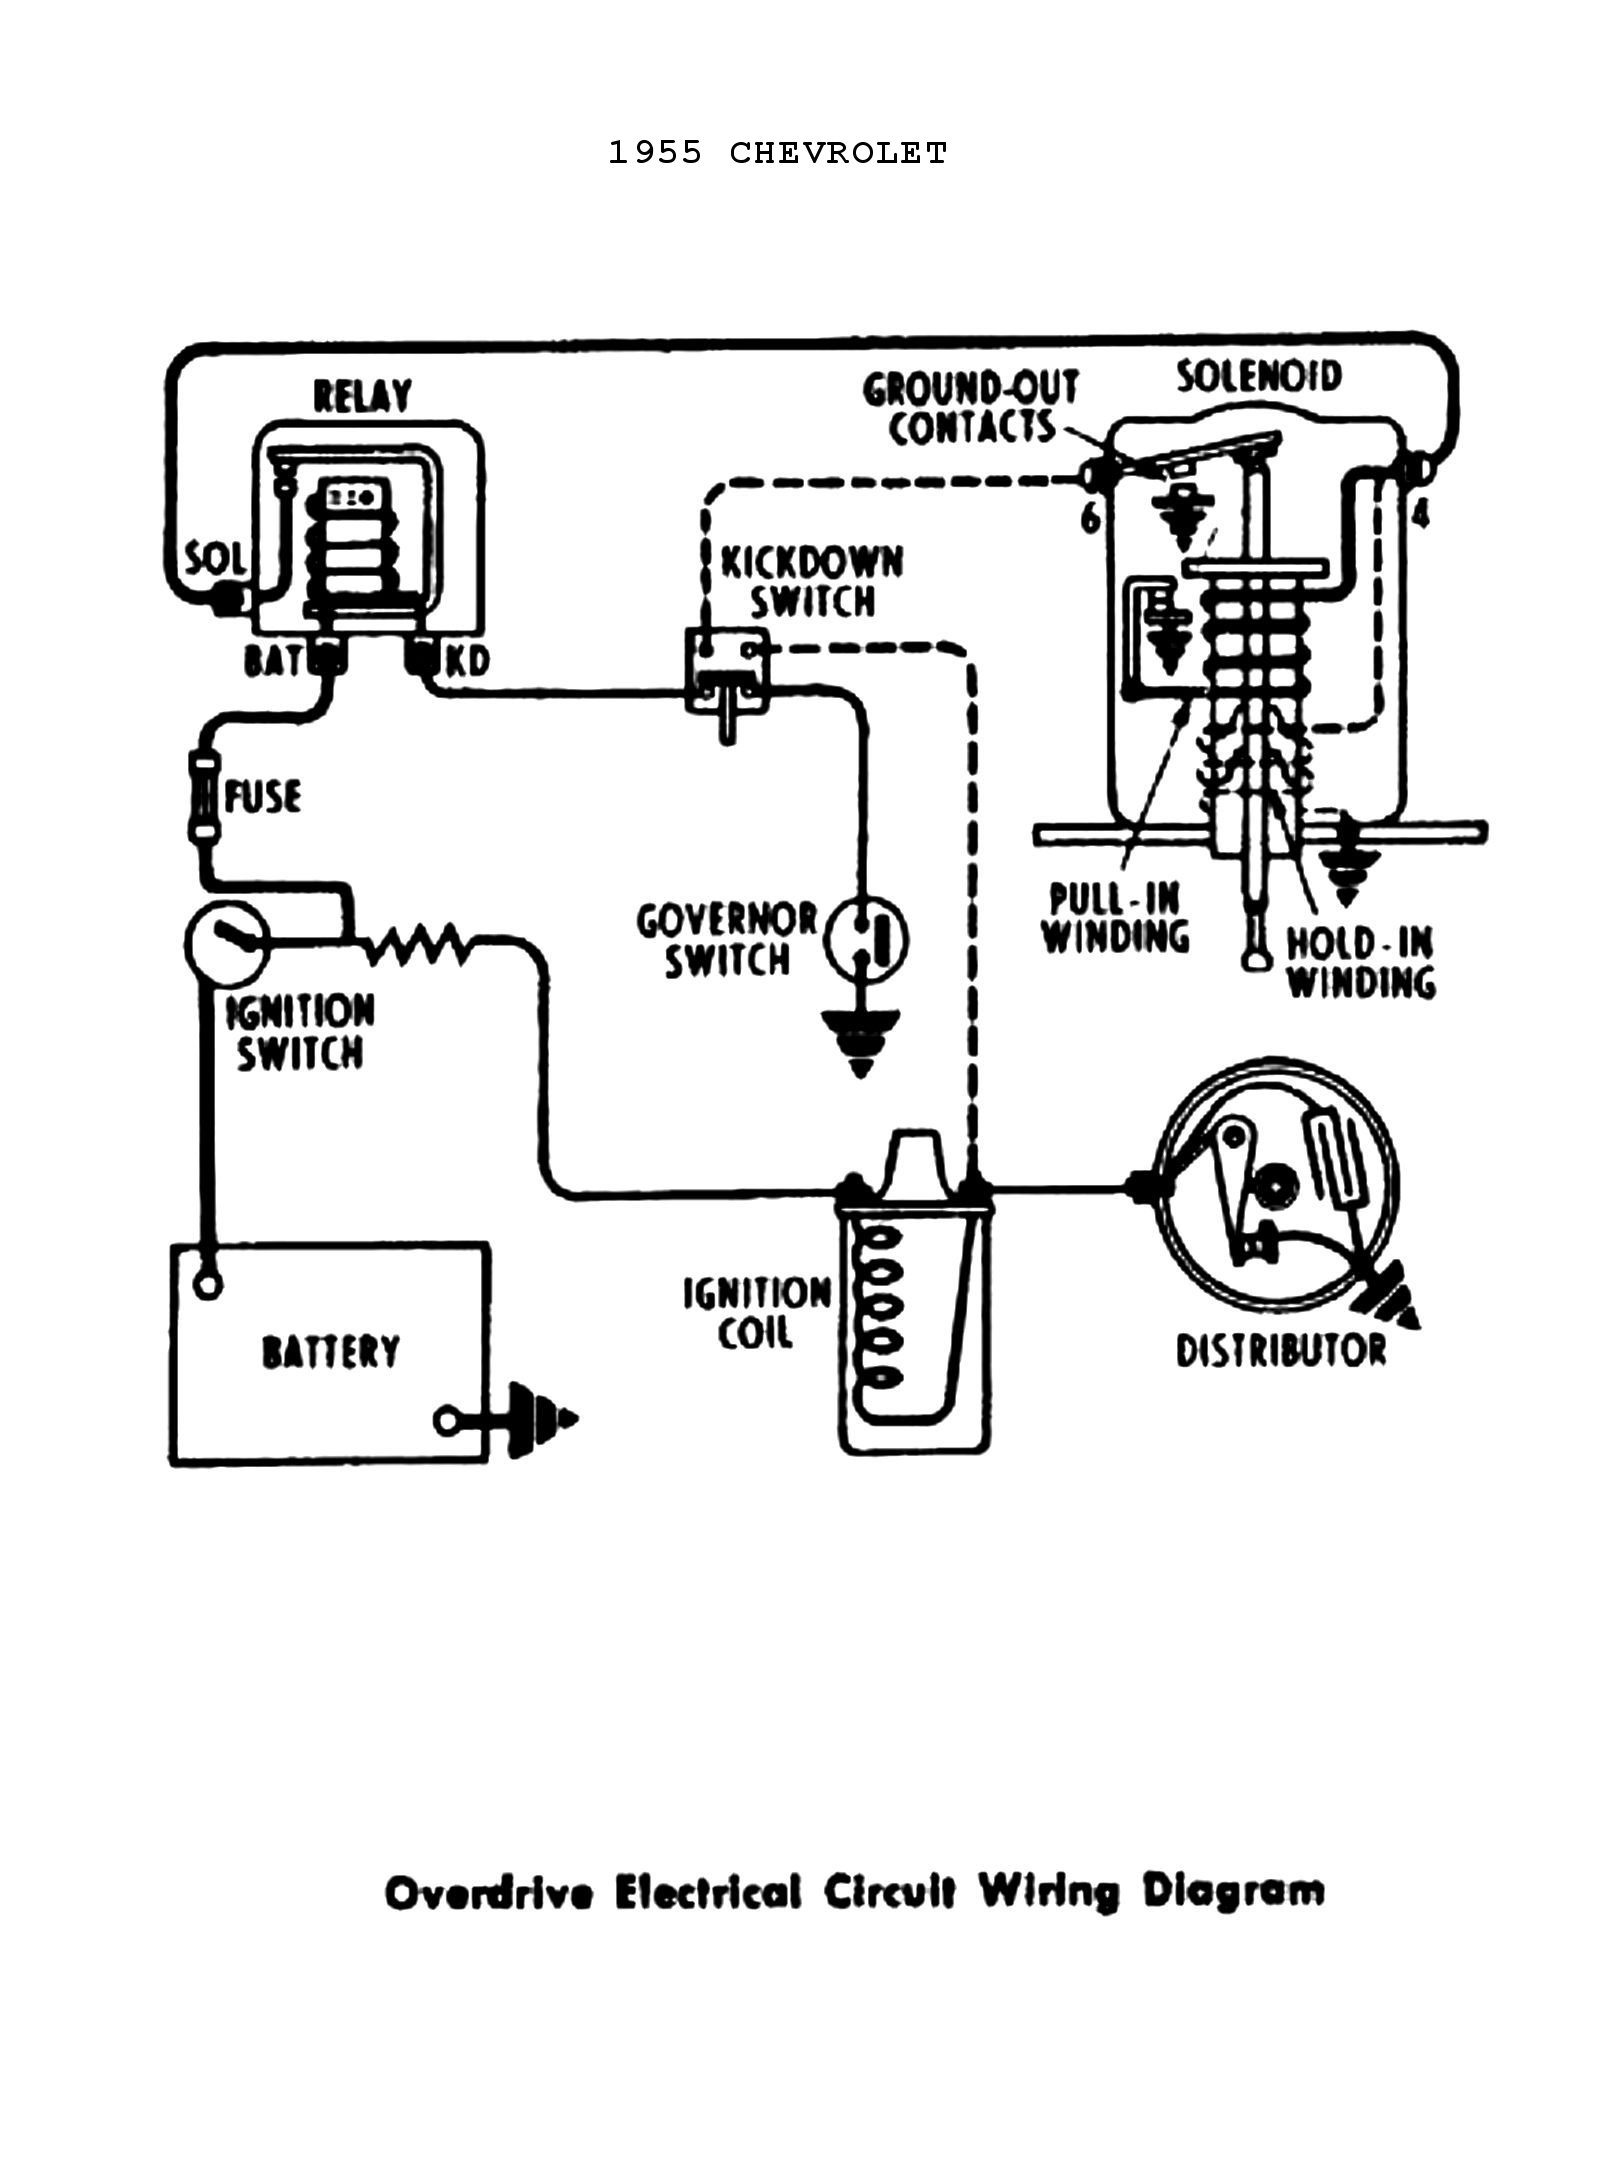 1966 Gmc Wiring Diagram | Wiring Diagram  Gmc Truck Wiring For V on gmc 4x4 trucks, gmc basic trucks, gmc touring trucks, gmc prerunner trucks, gmc luxury trucks, gmc sle trucks, gmc ford trucks, gmc hybrid trucks, gmc v10 trucks, gmc v16 trucks, gmc diesel trucks,